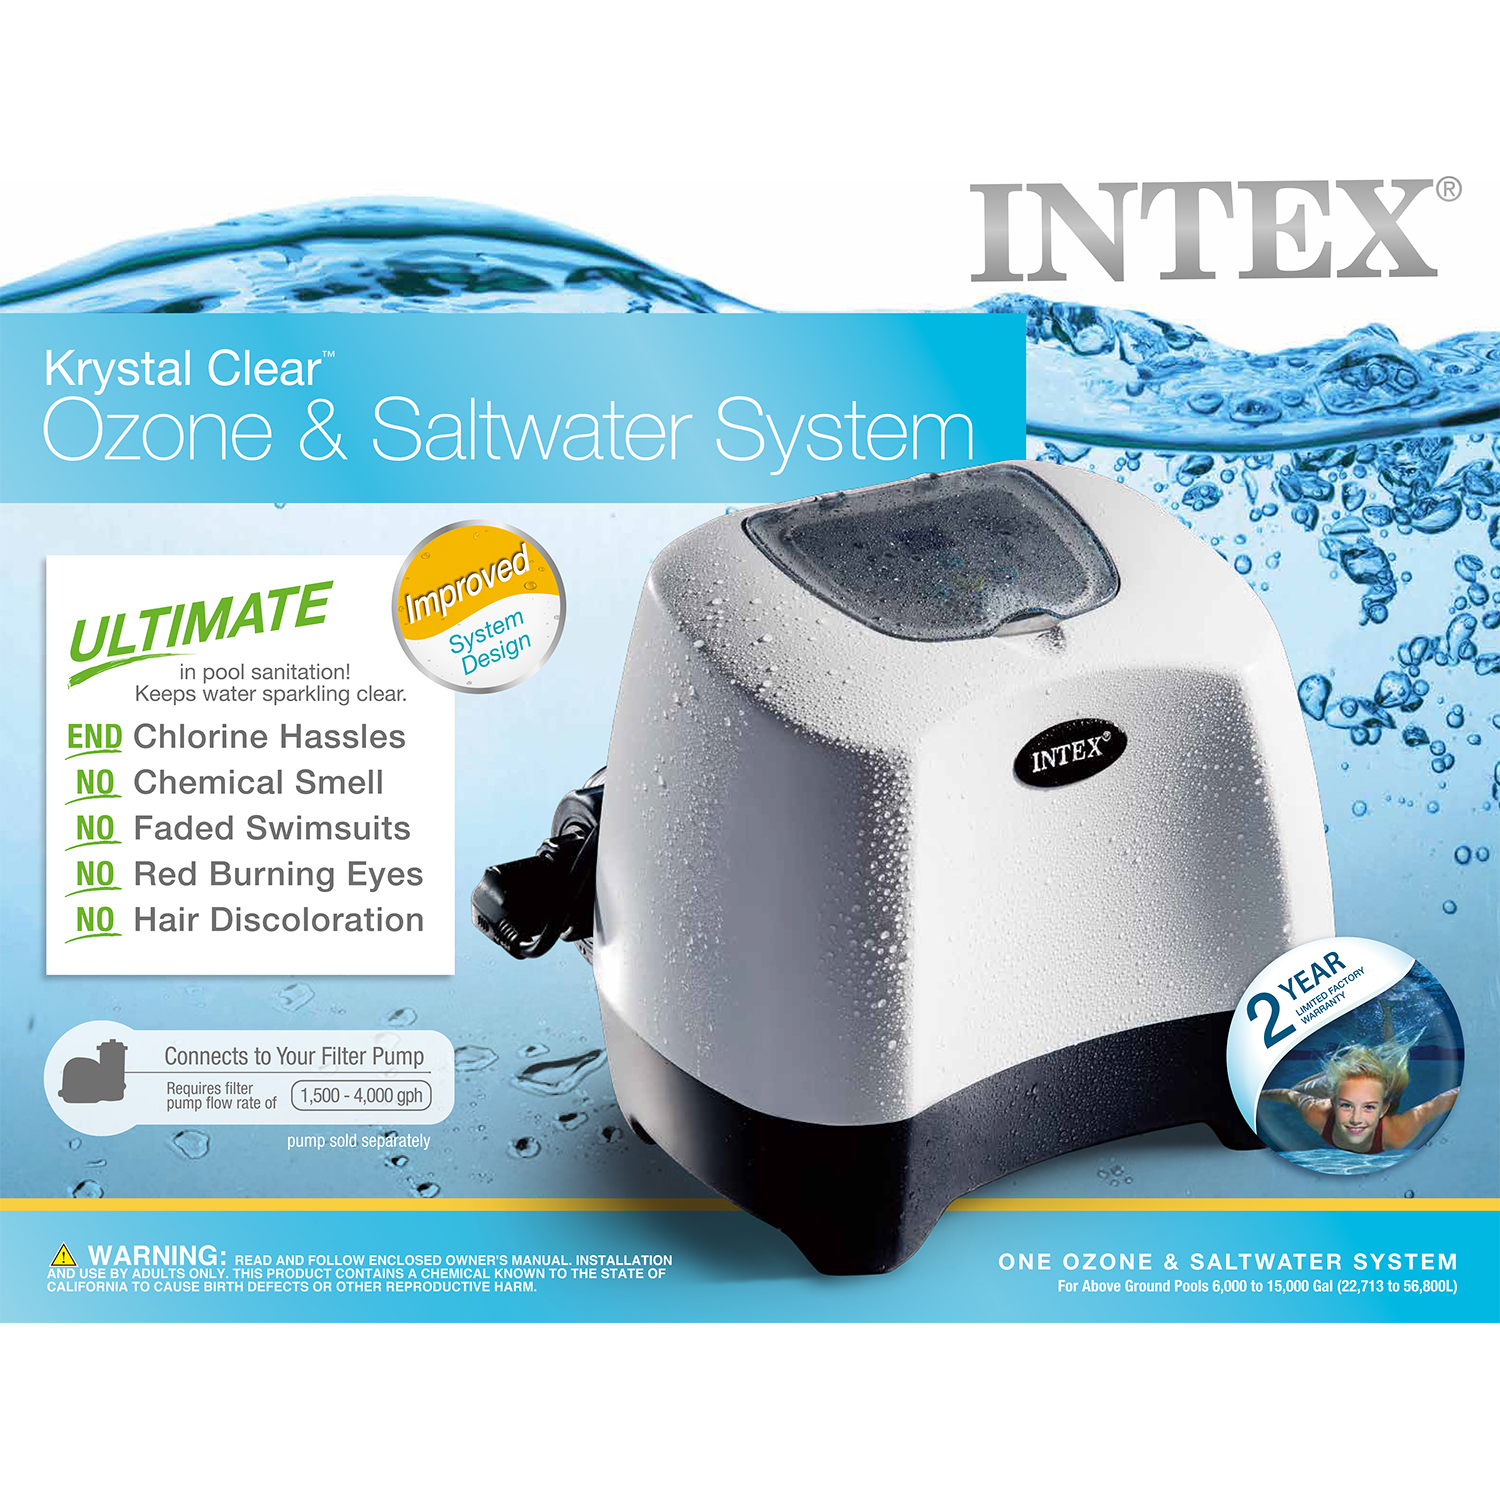 Intex Krystal Clear Ozone and Saltwater System for Ground